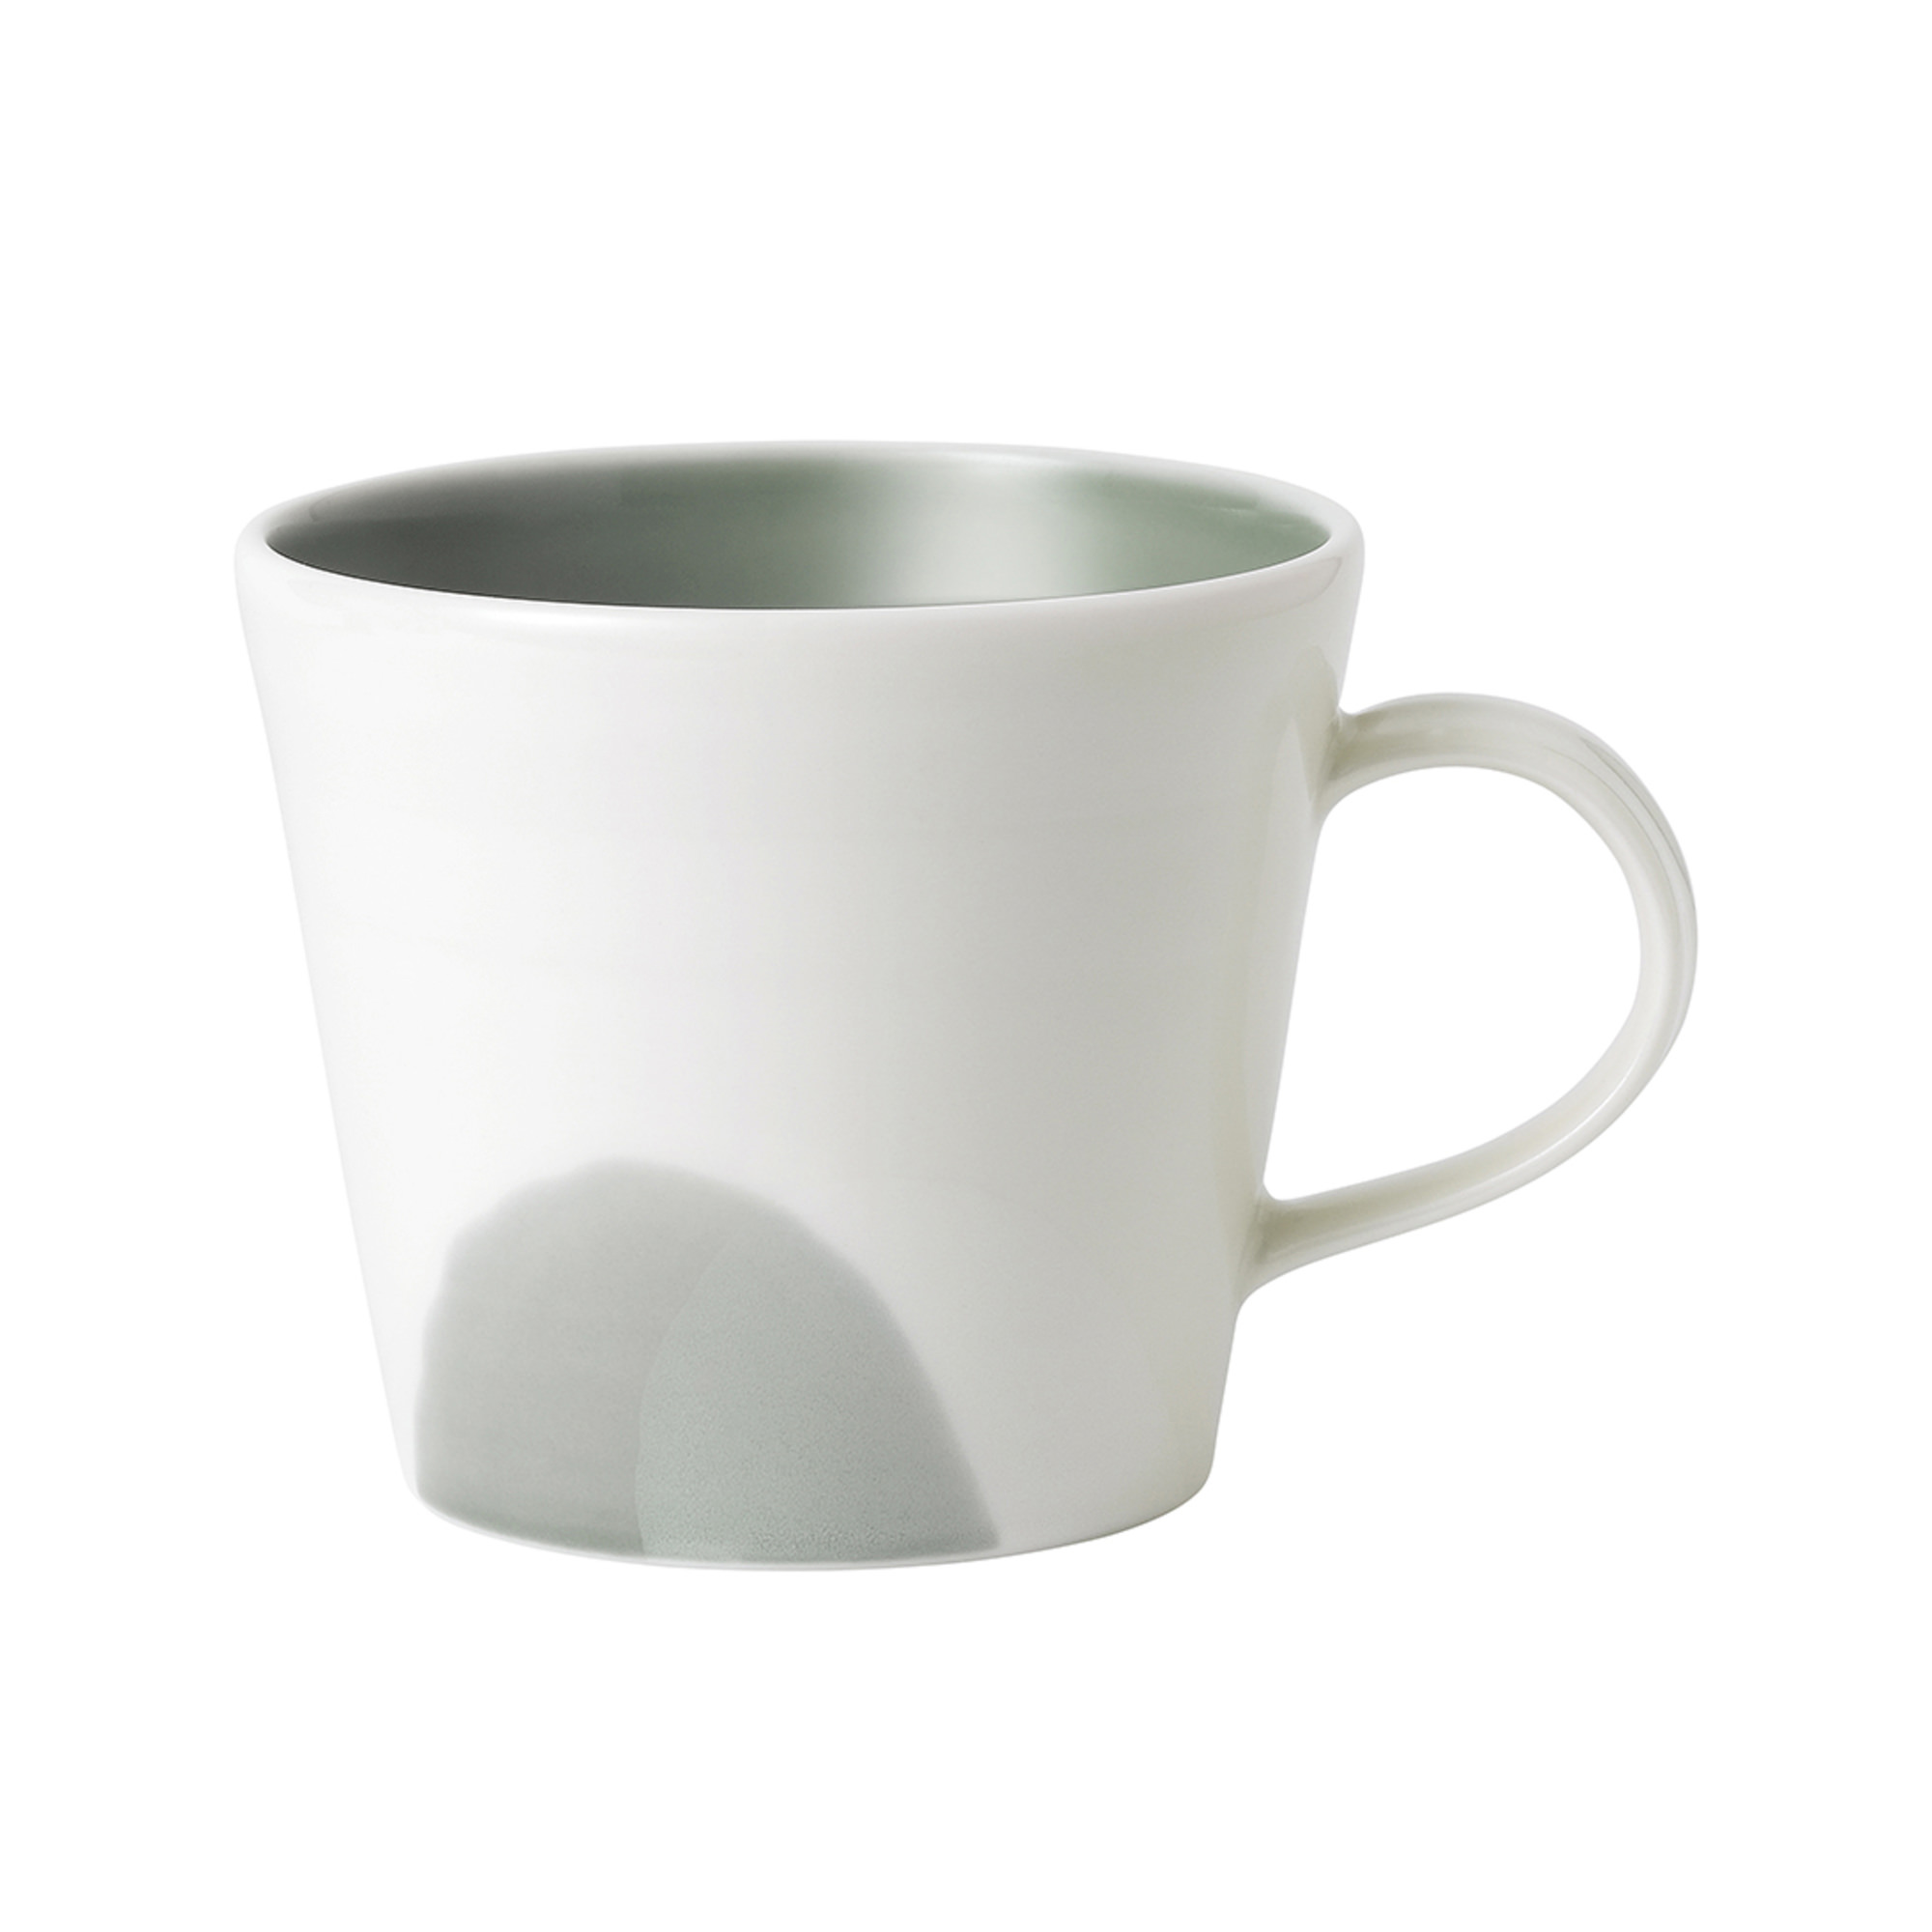 Royal Doulton Signature 1815 Mug 420ml Green